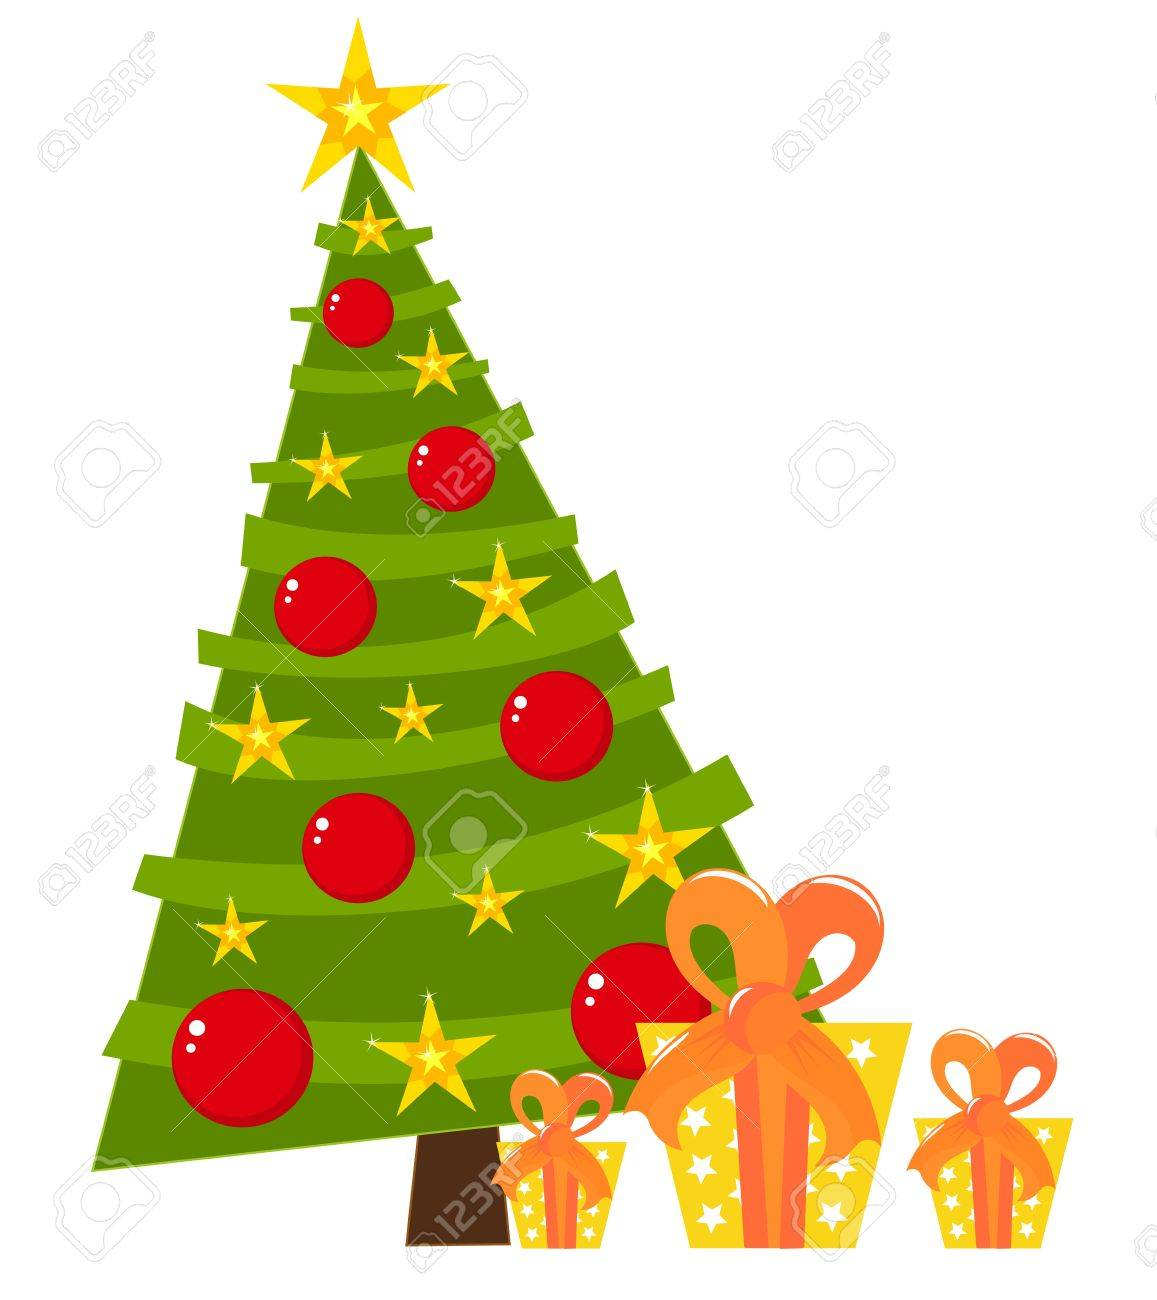 Real christmas trees with presents - Christmas Tree And Presents Stock Vector 11587862